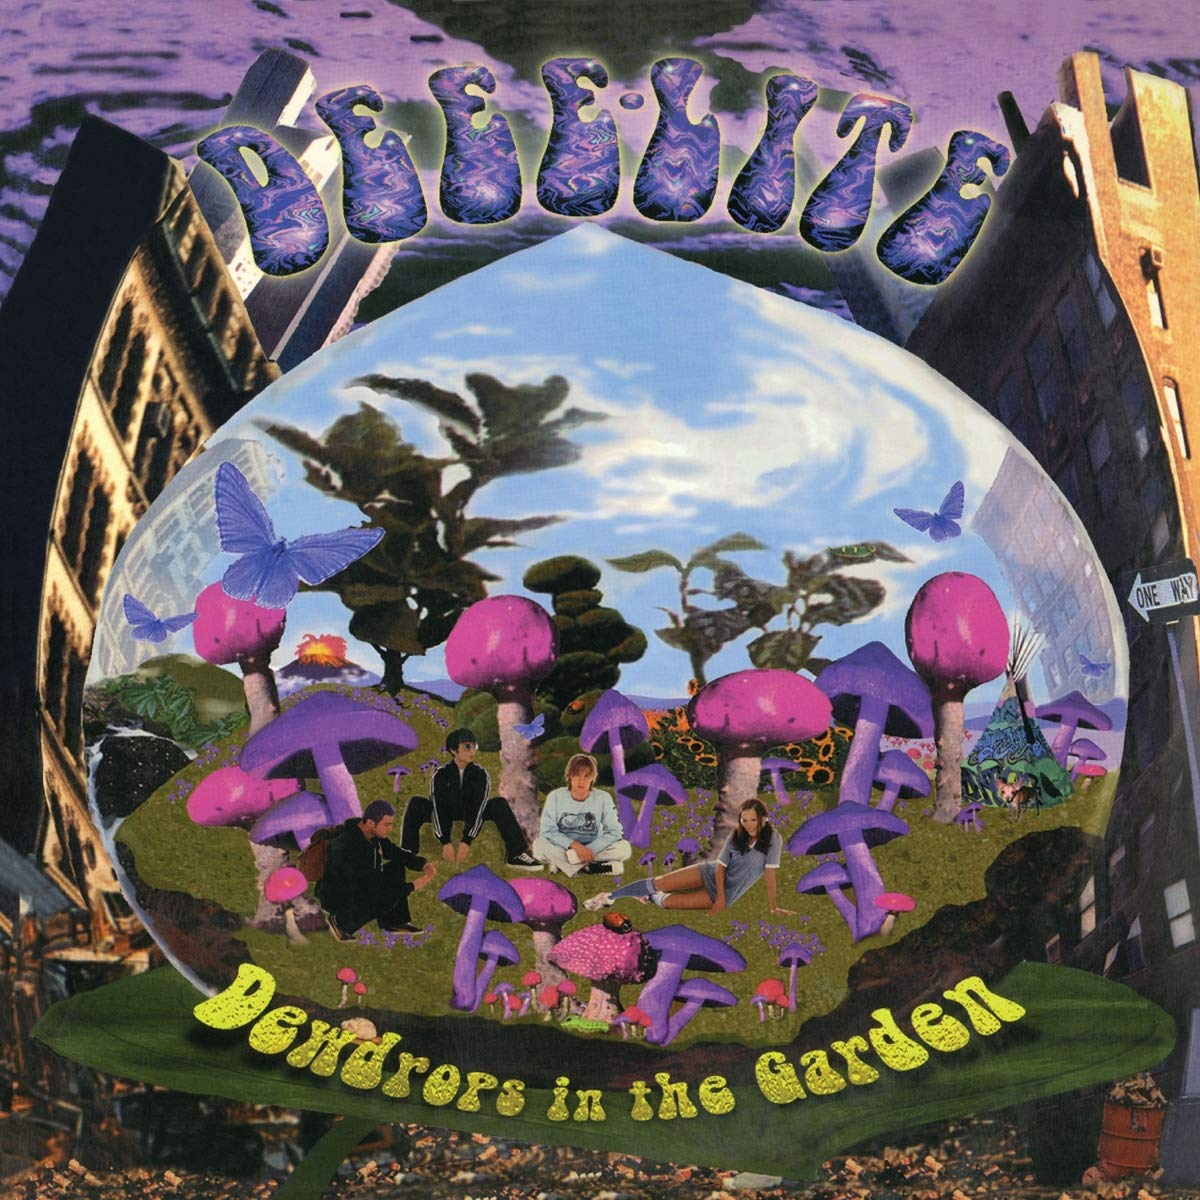 Deee-Lite, Dewdrops in the Garden